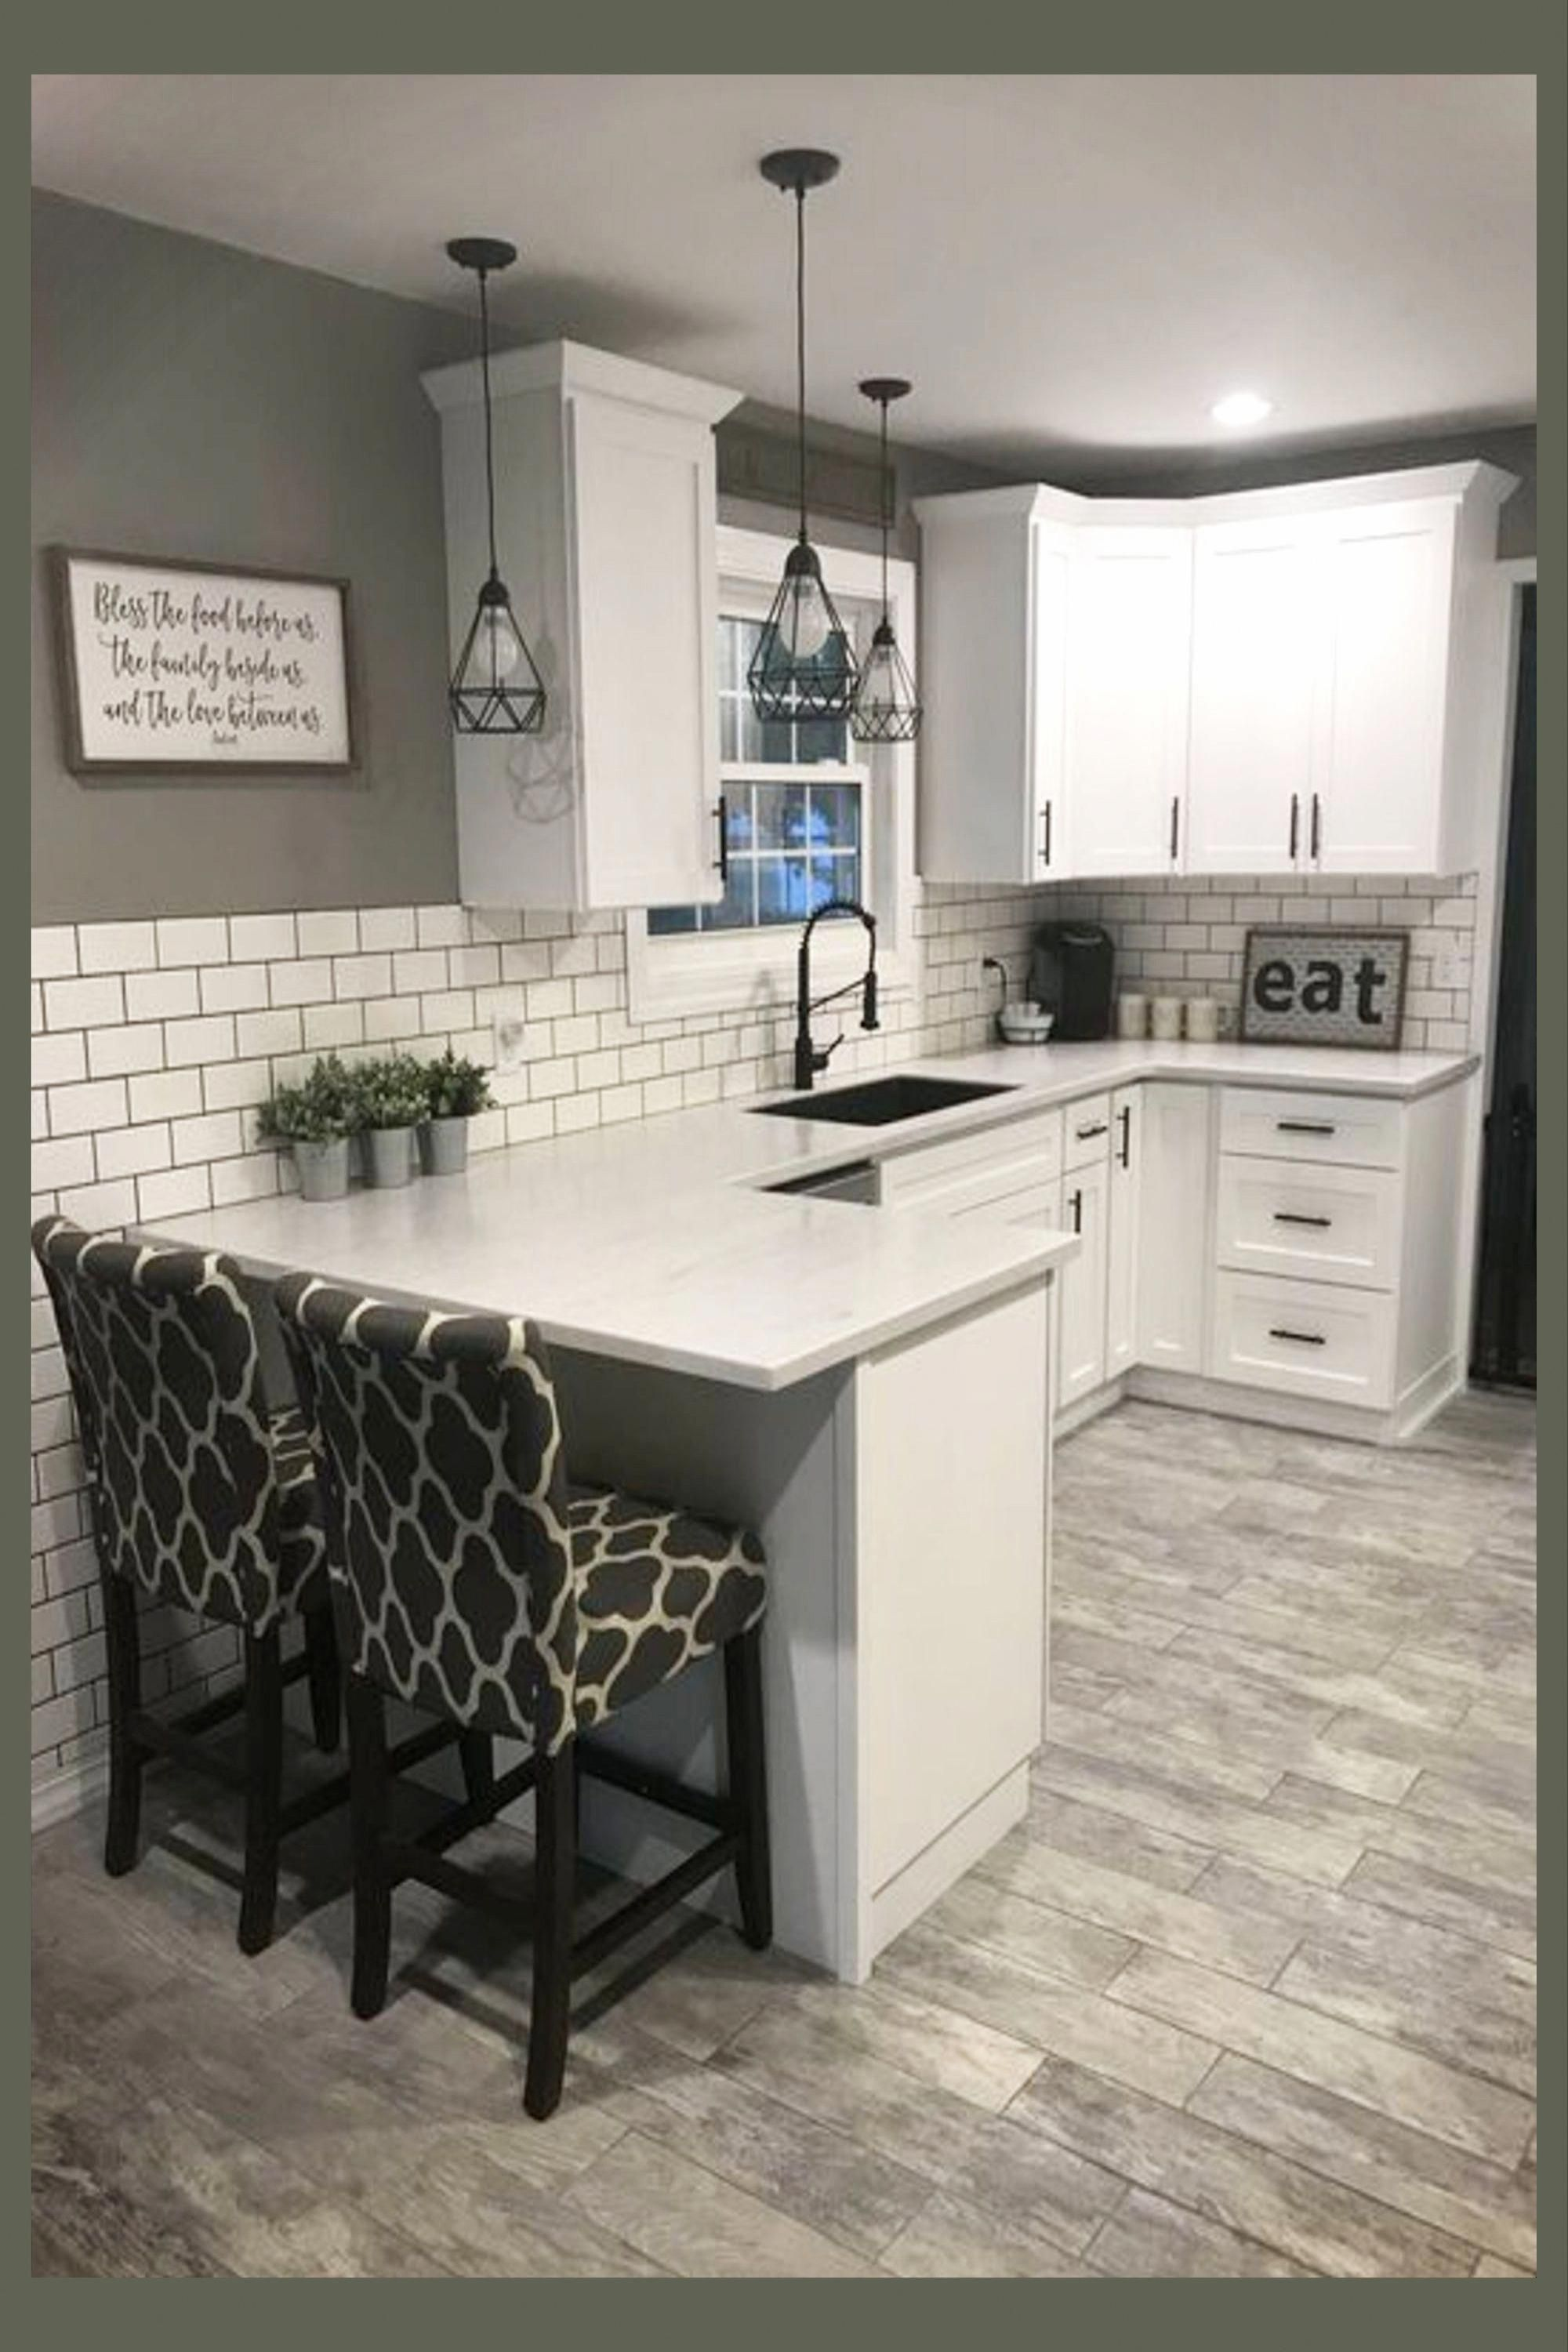 Farmhouse Kitchen Ideas On A Budget New Pictures For 2021 Kitchen Remodel Small Small Kitchen Decor Farmhouse Kitchen On A Budget Small kitchen design ideas on a budget